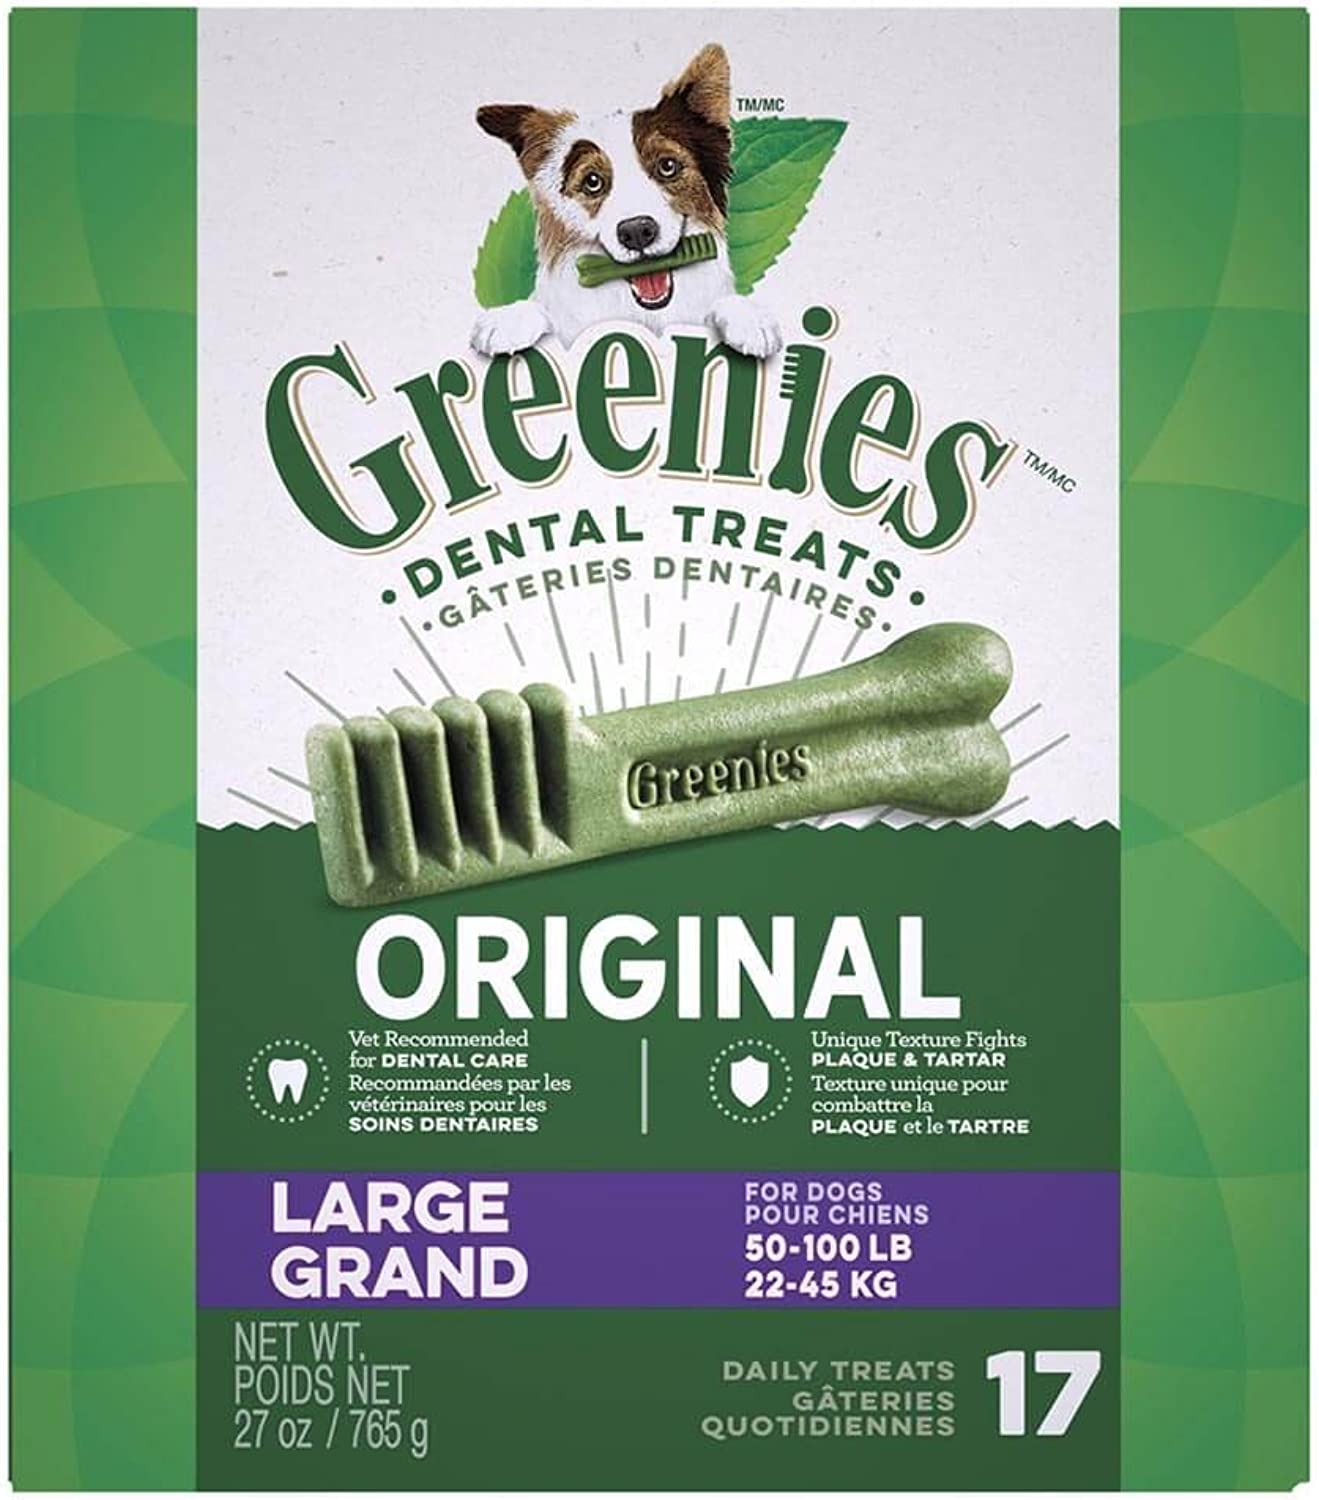 Greenies 17 ct 27 oz Canister Large (1 x 27oz)